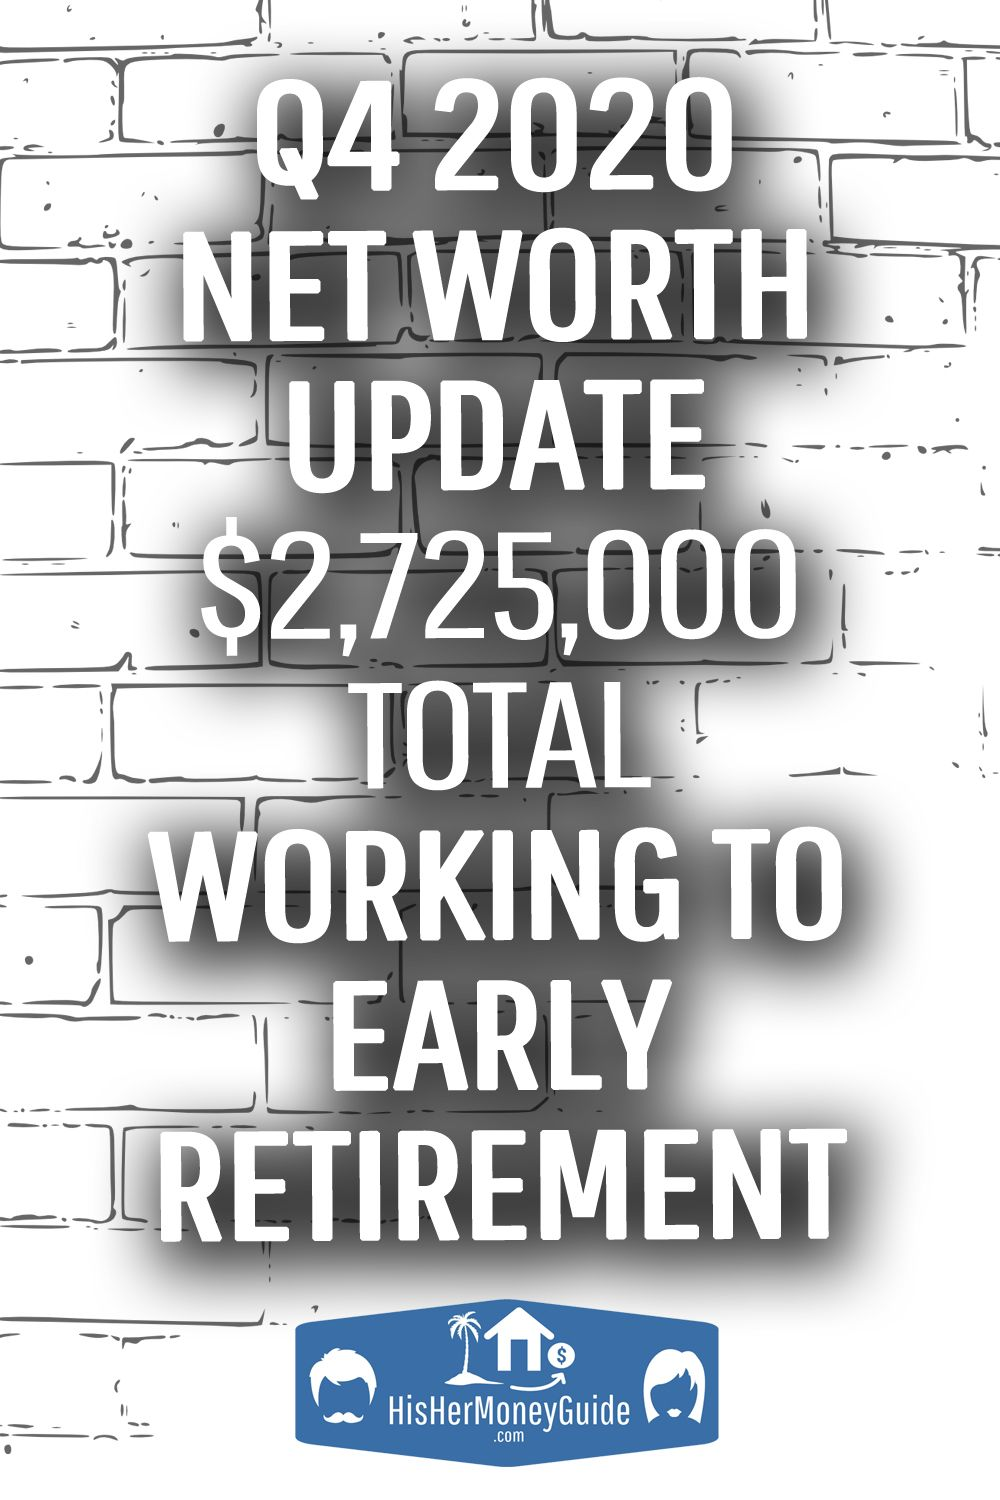 When It Comes To Money Tips For Seniors The List Is Exhaustive The Key Is Knowing Where To Look Here Are Some In 2020 Retirement Money Retirement Advice Money Tips